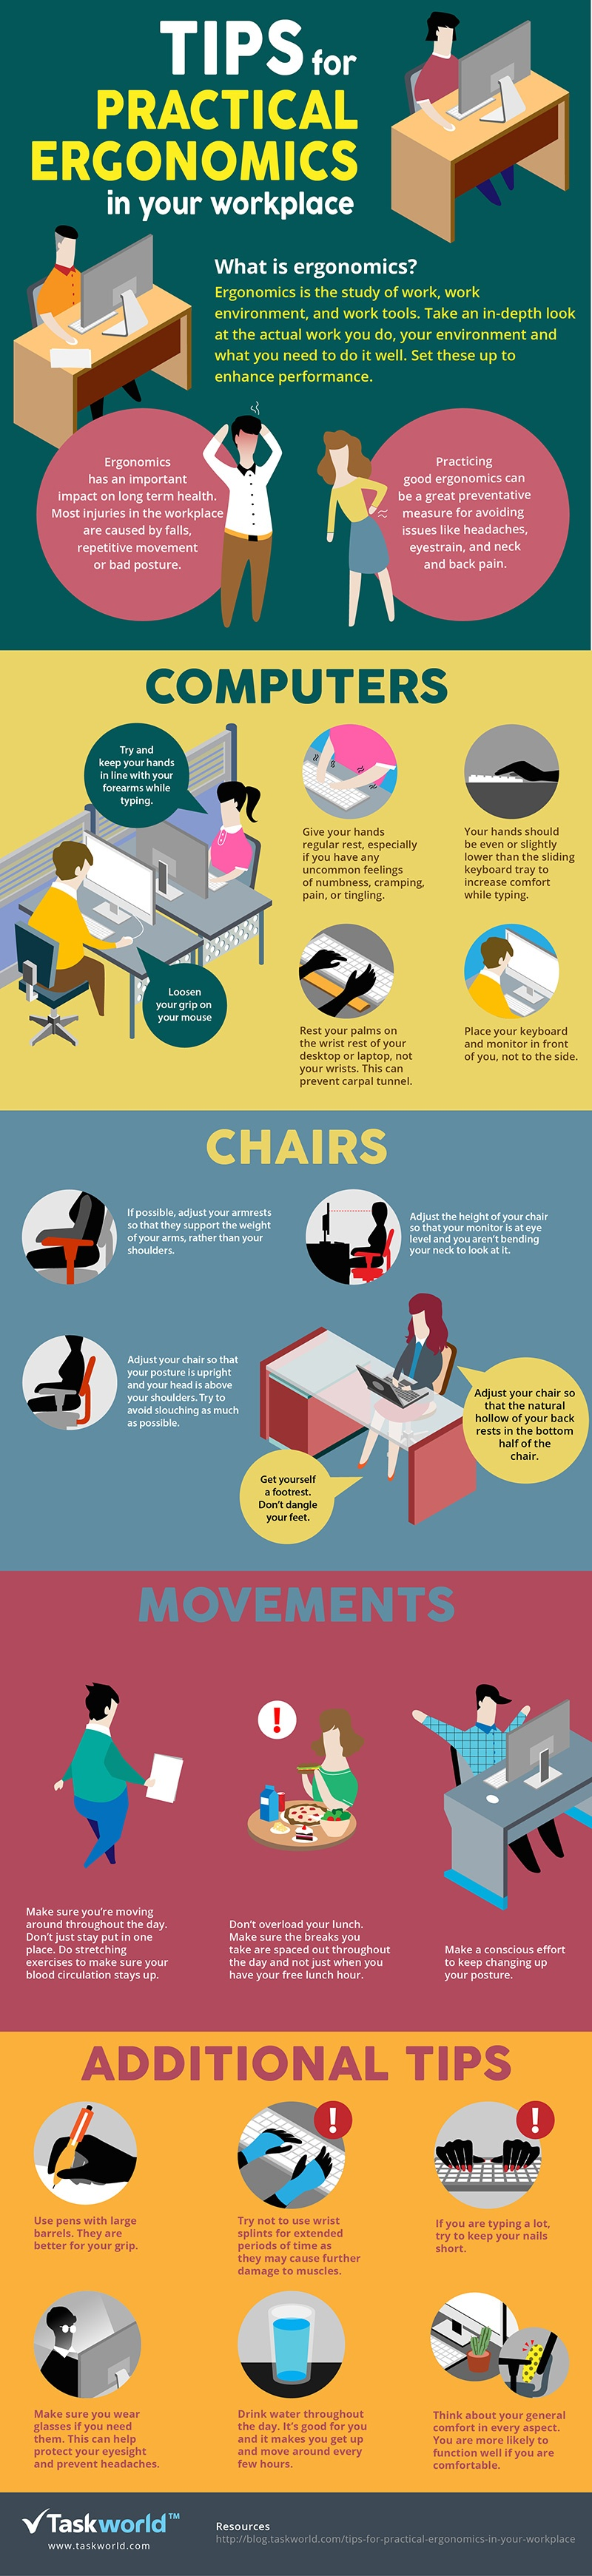 Practical Ergonomic Tips For Your Workspace Cma